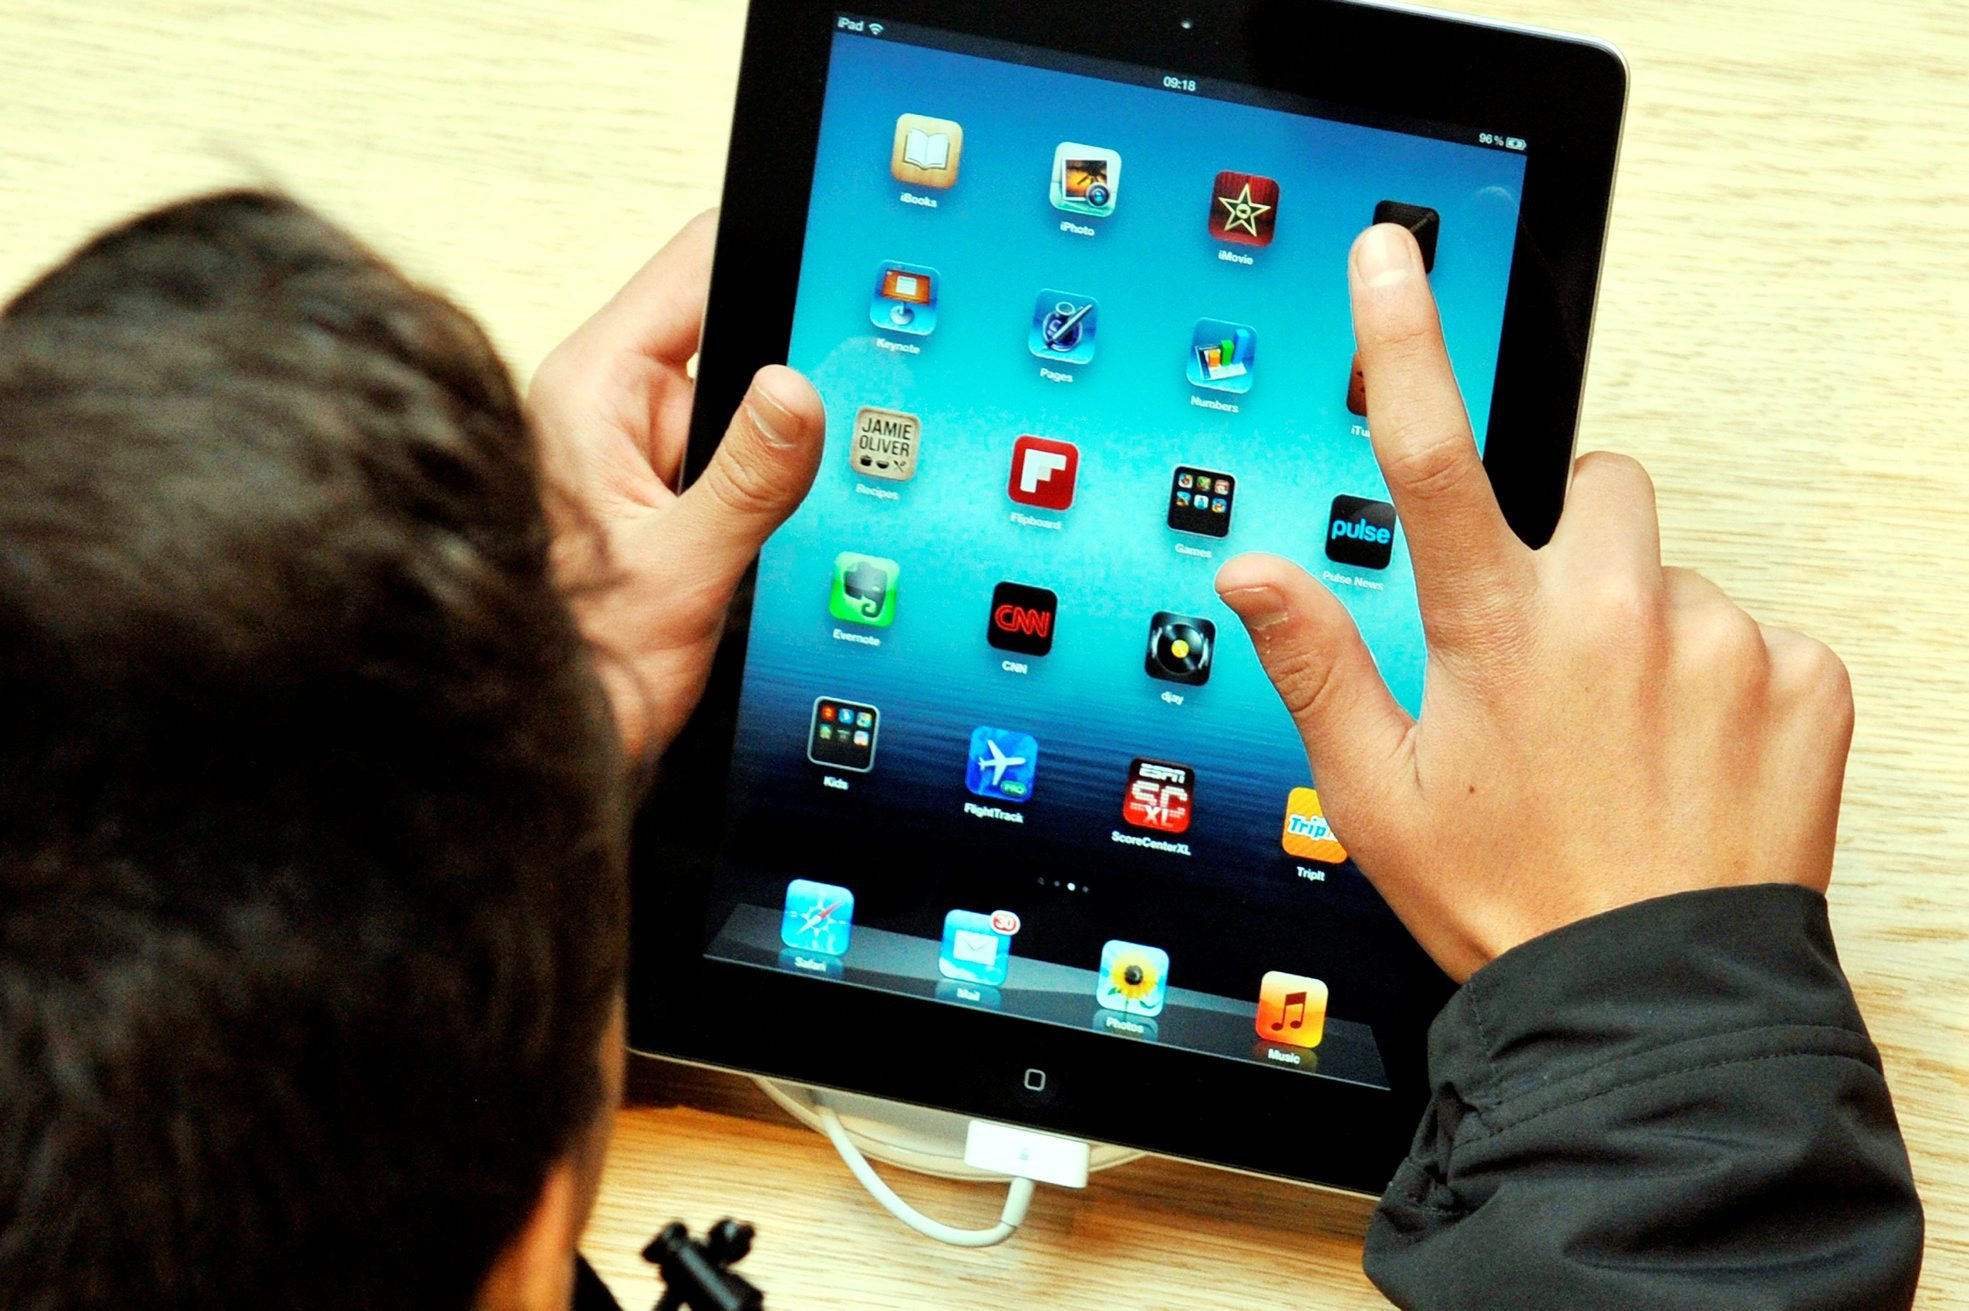 Parents are giving children iPads to keep them quiet